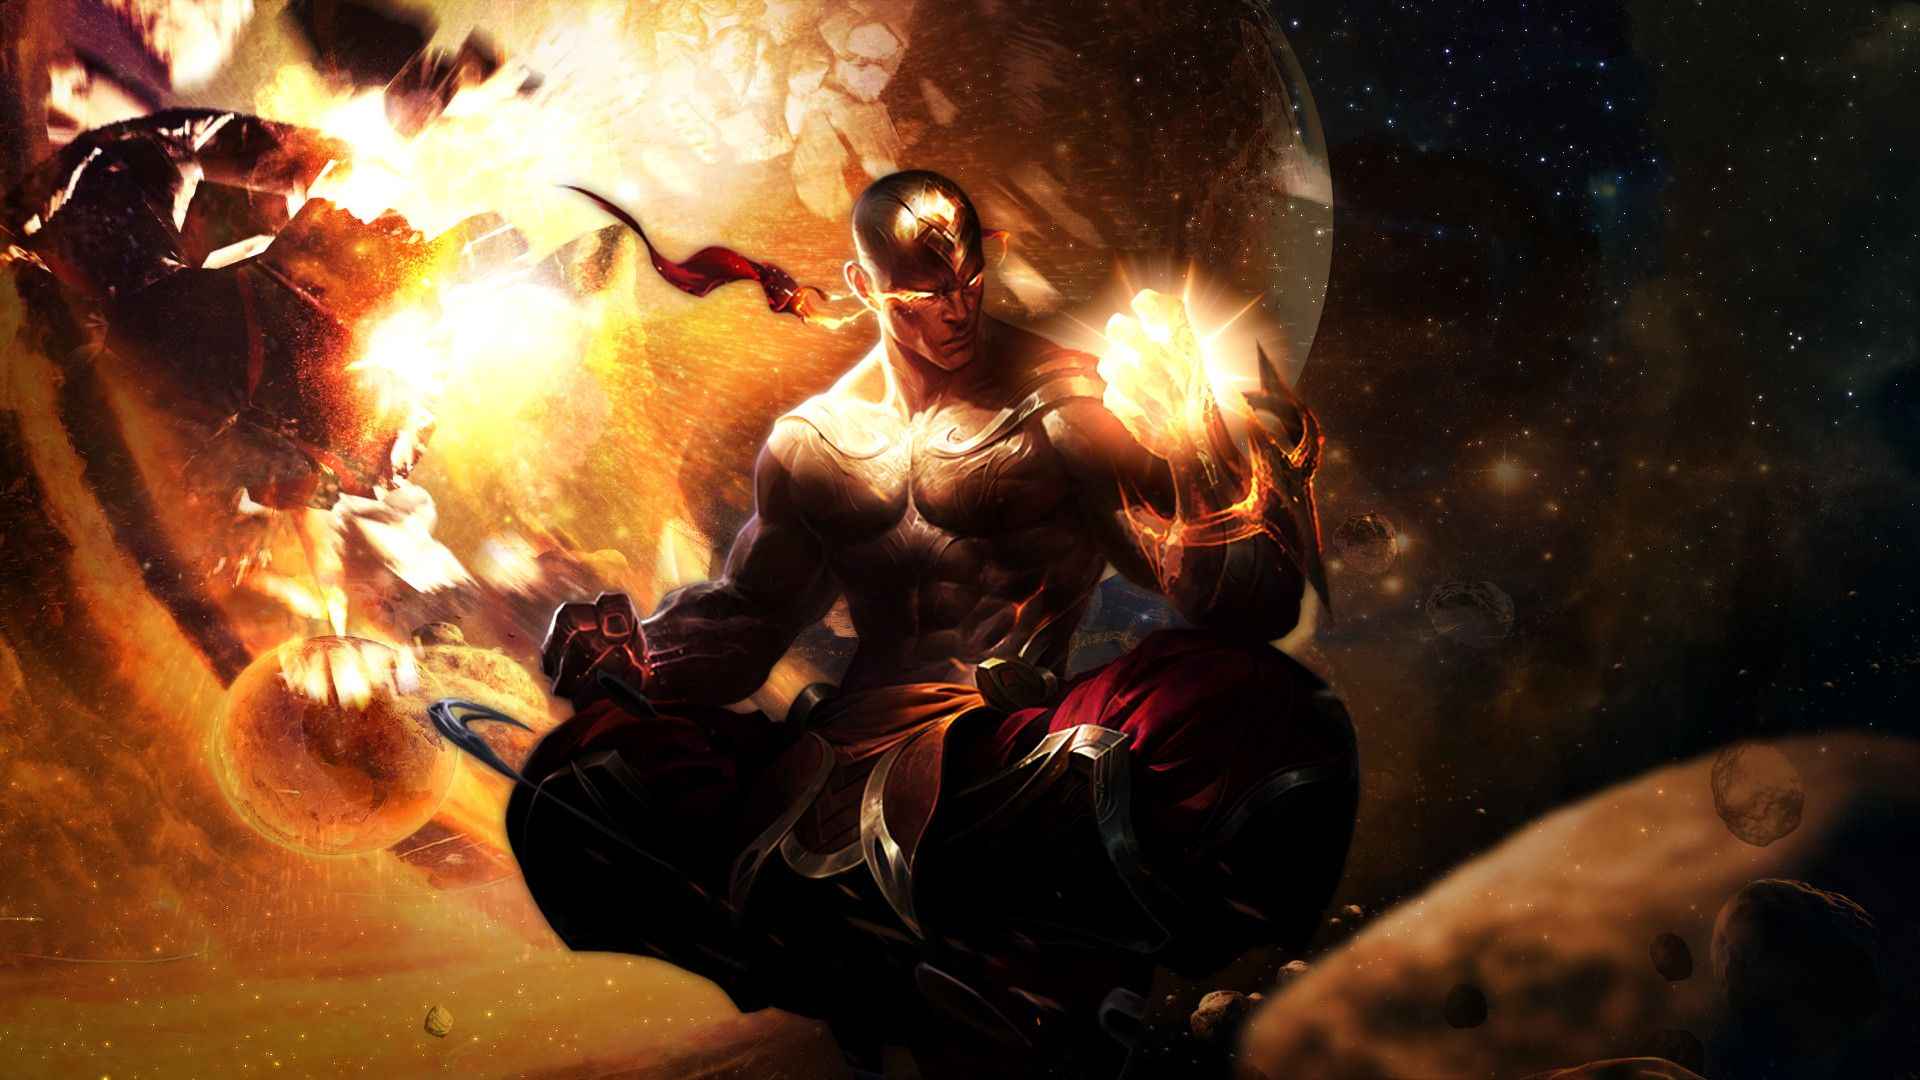 Lee Sin Wallpapers Top Free Lee Sin Backgrounds Wallpaperaccess